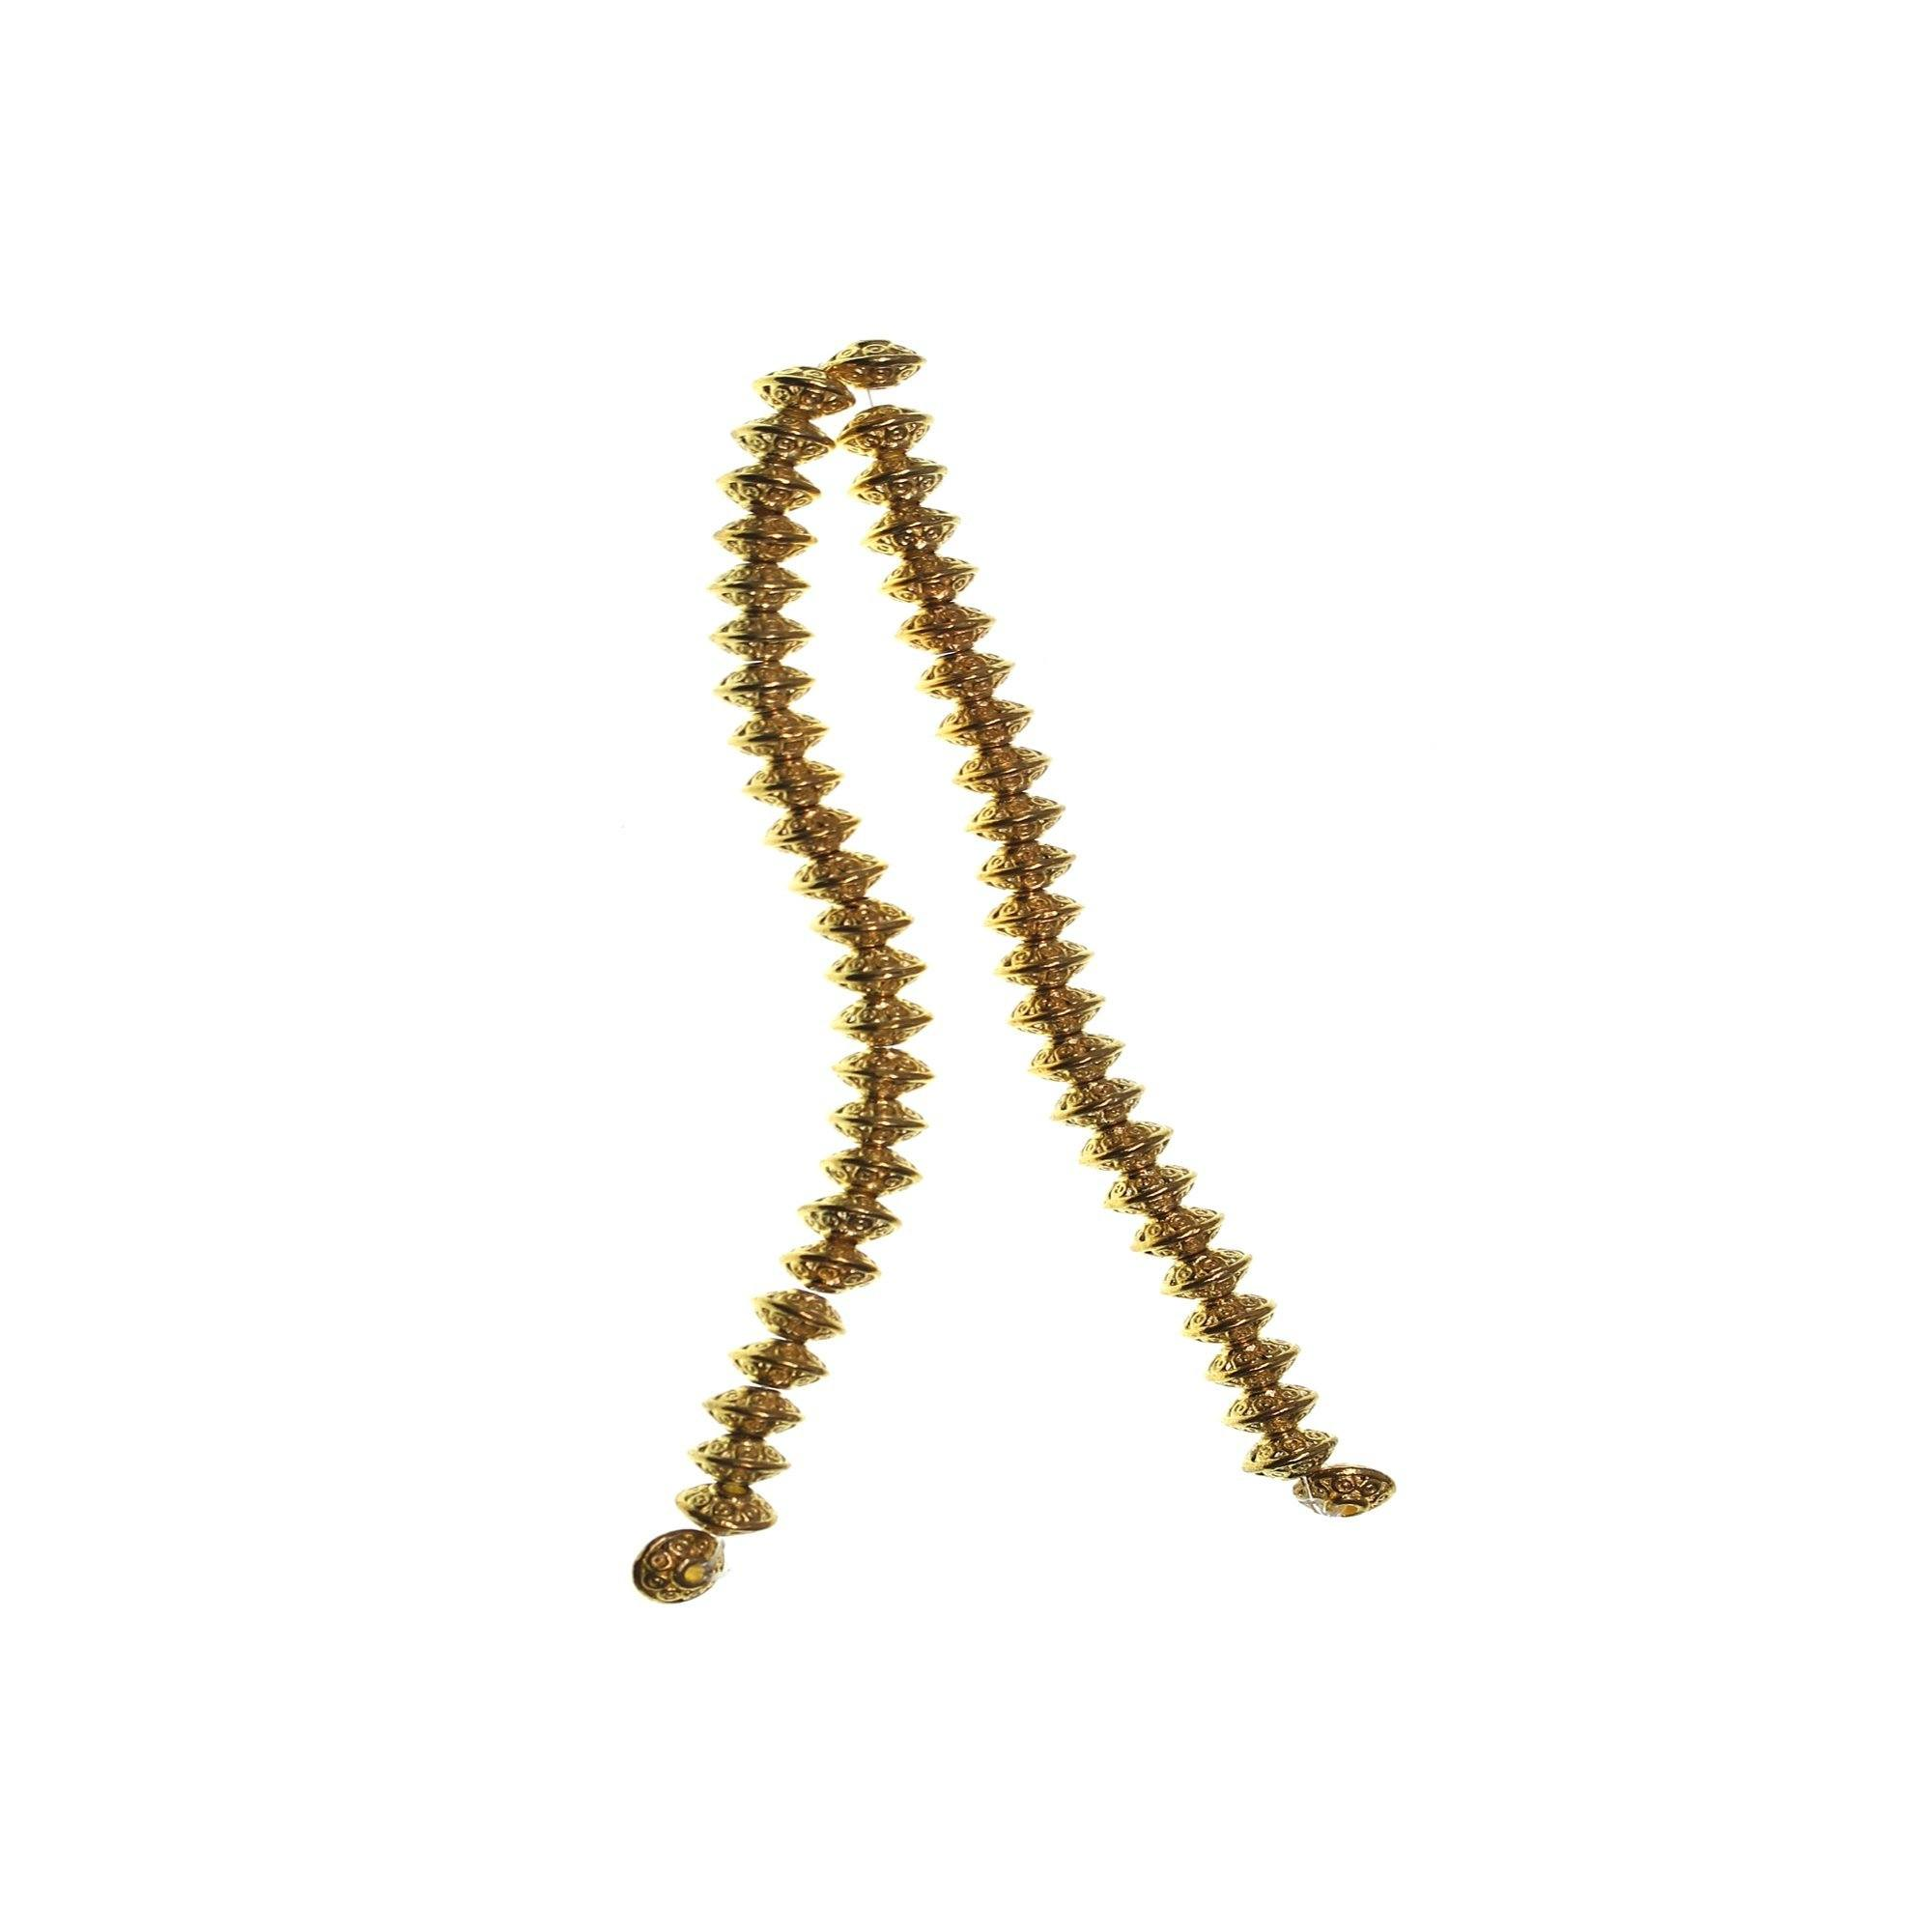 Gold Tone Metal Dot Rondell 4x6mm